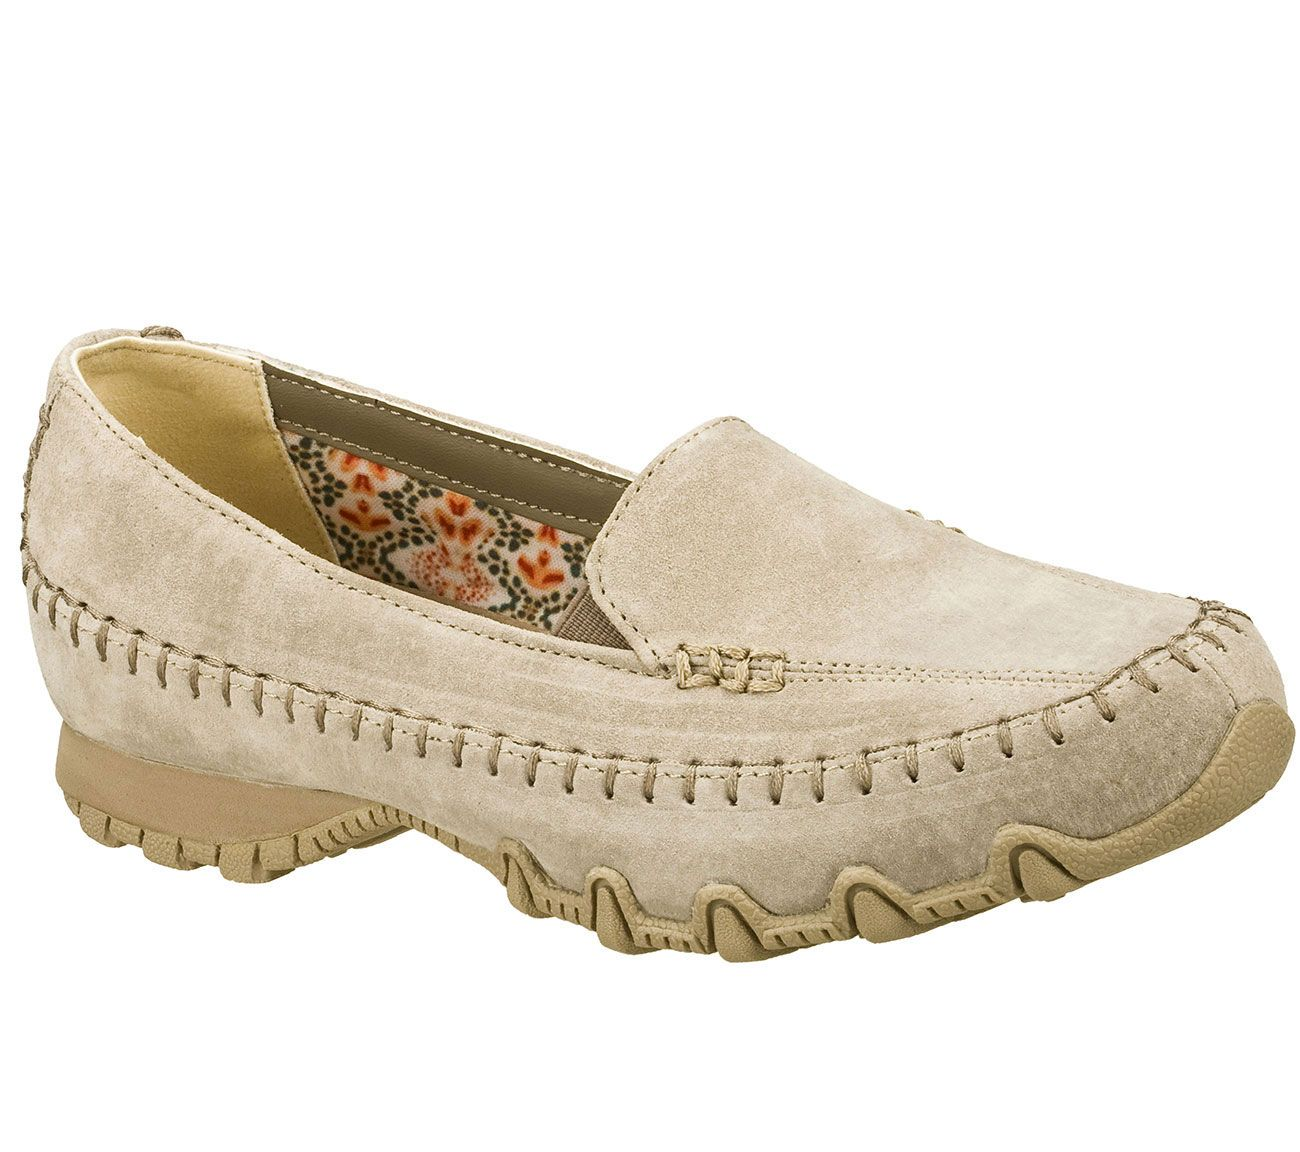 440a486791ae Keep walking in refined style and amazing comfort in the SKECHERS Relaxed  Fit®  Bikers - Pedestrian shoe. Soft suede upper in a slip on dress casual  comfort ...